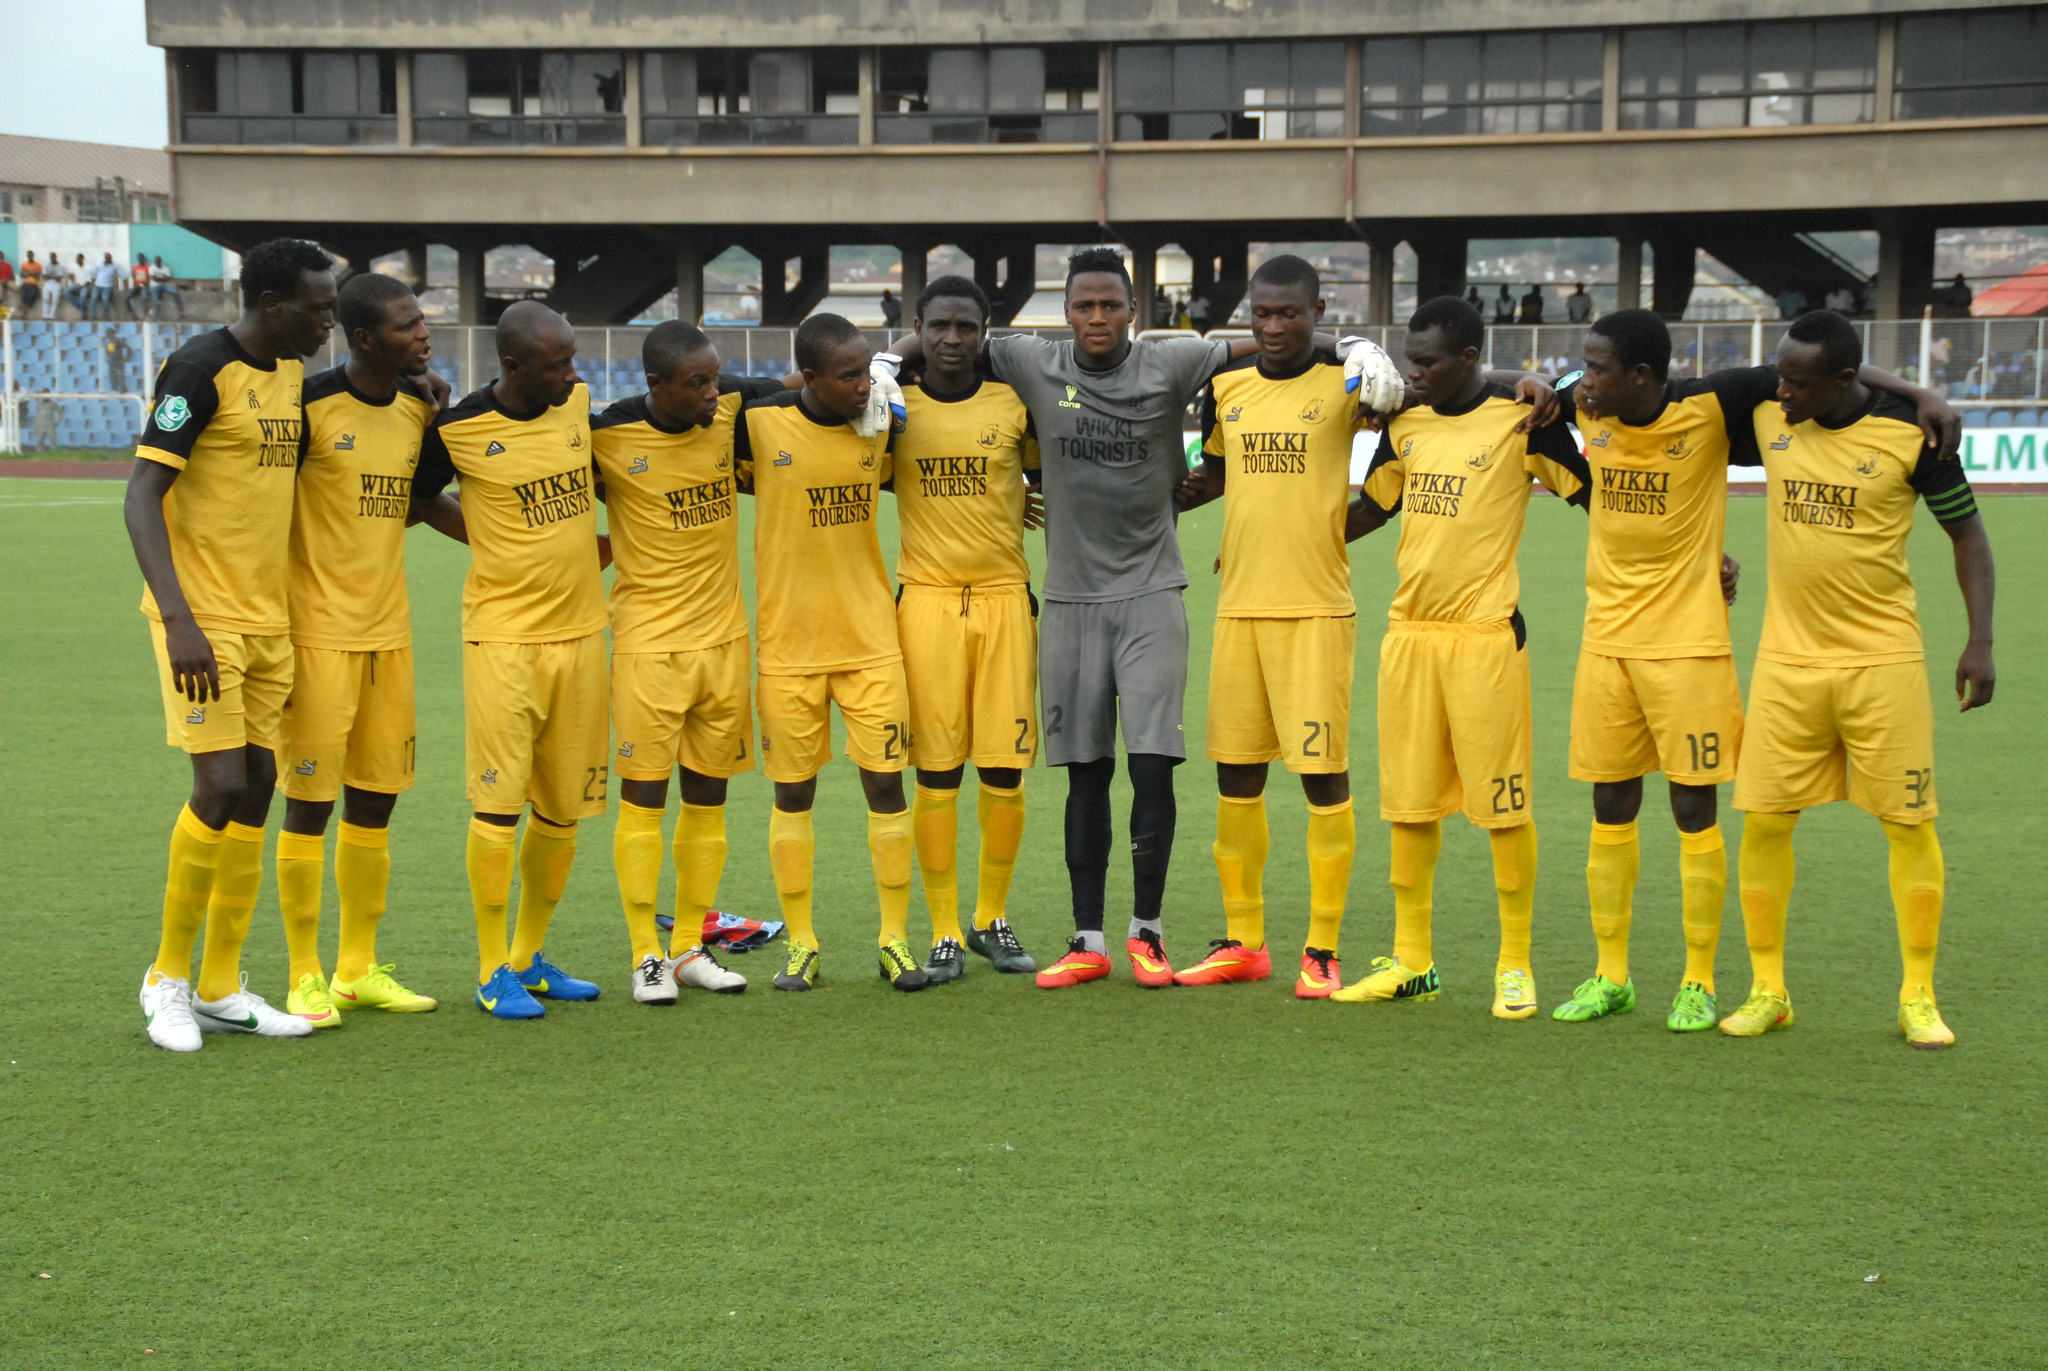 Wikki Tourists' Management Dissolved by Bauchi State Government